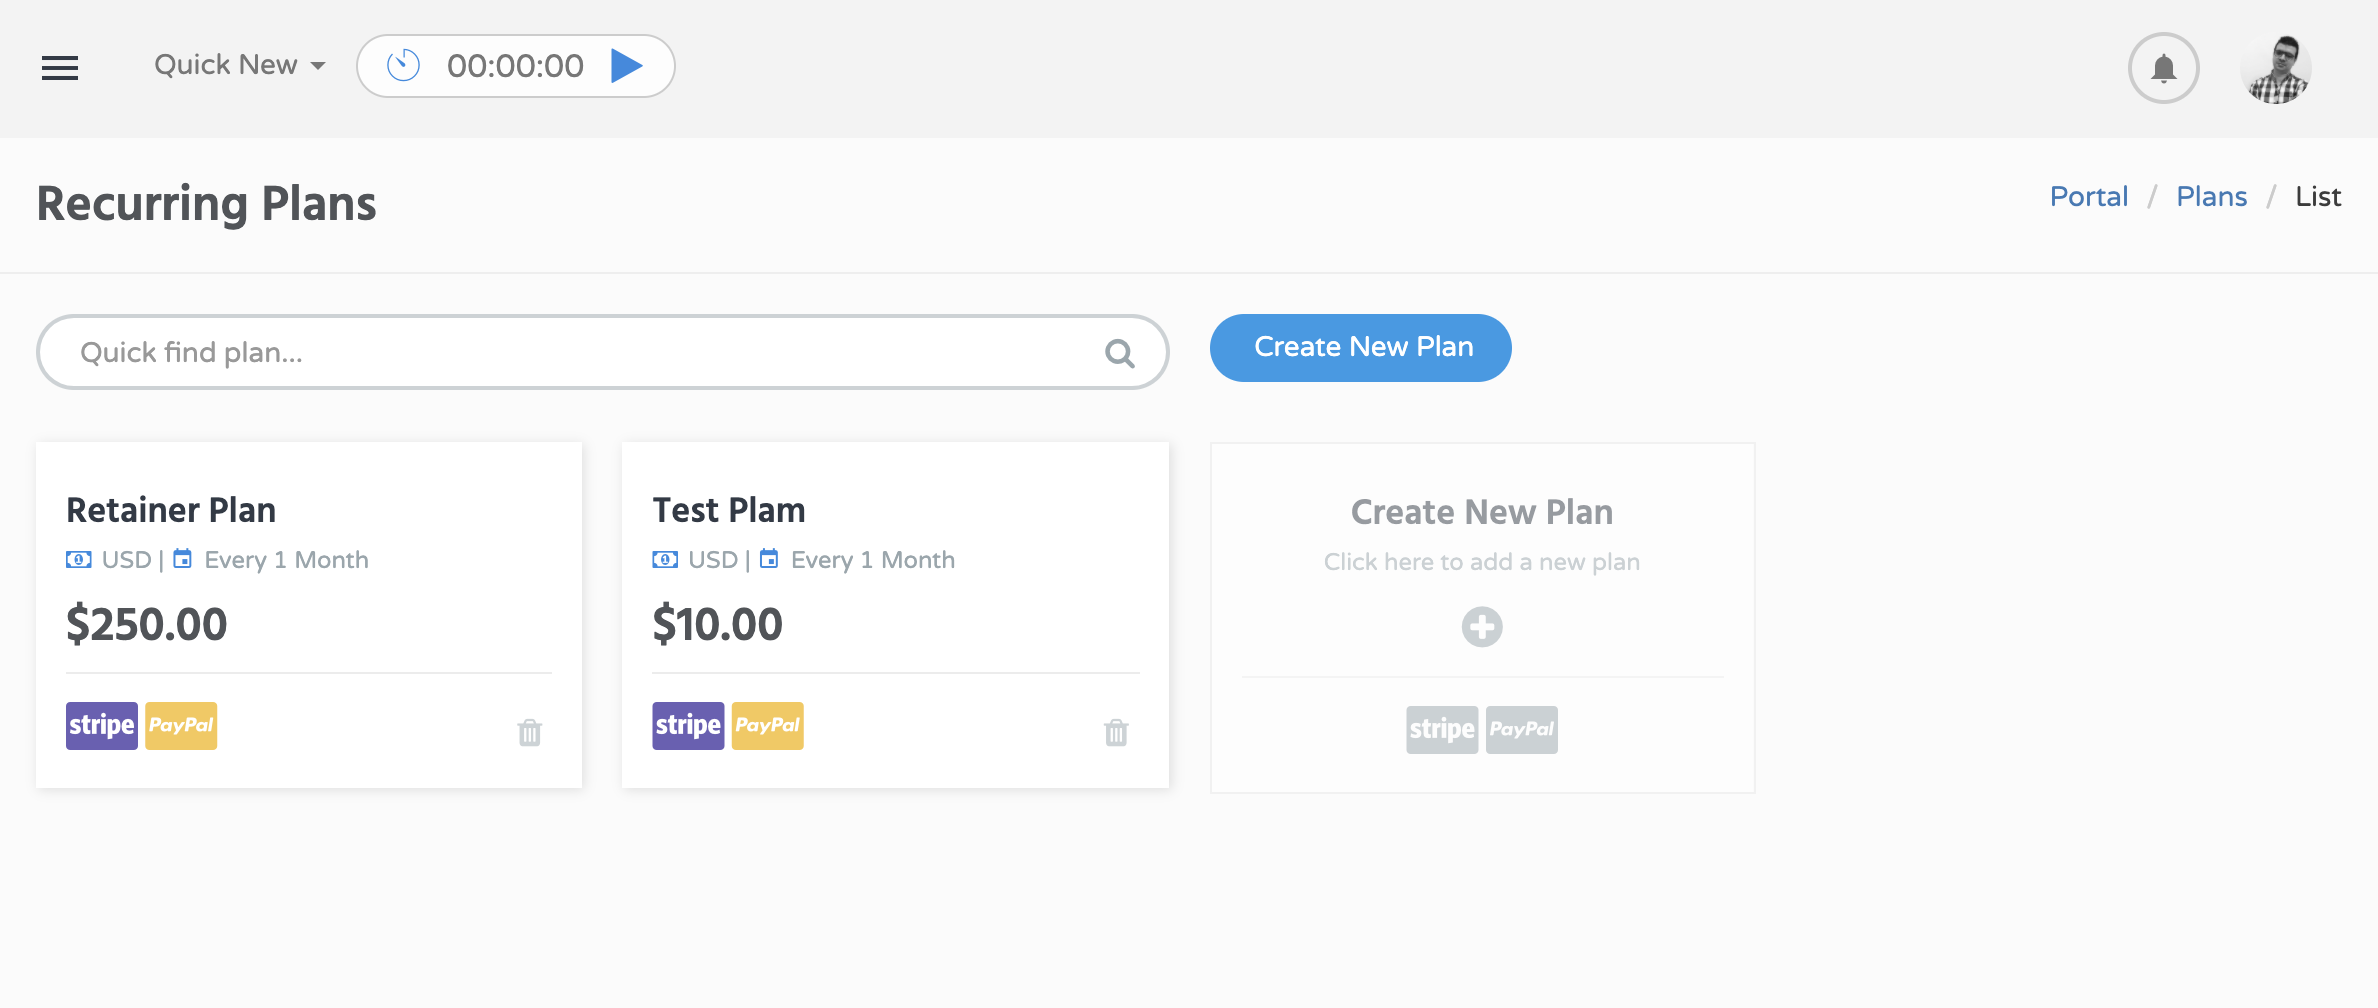 WordPress Portal Plans